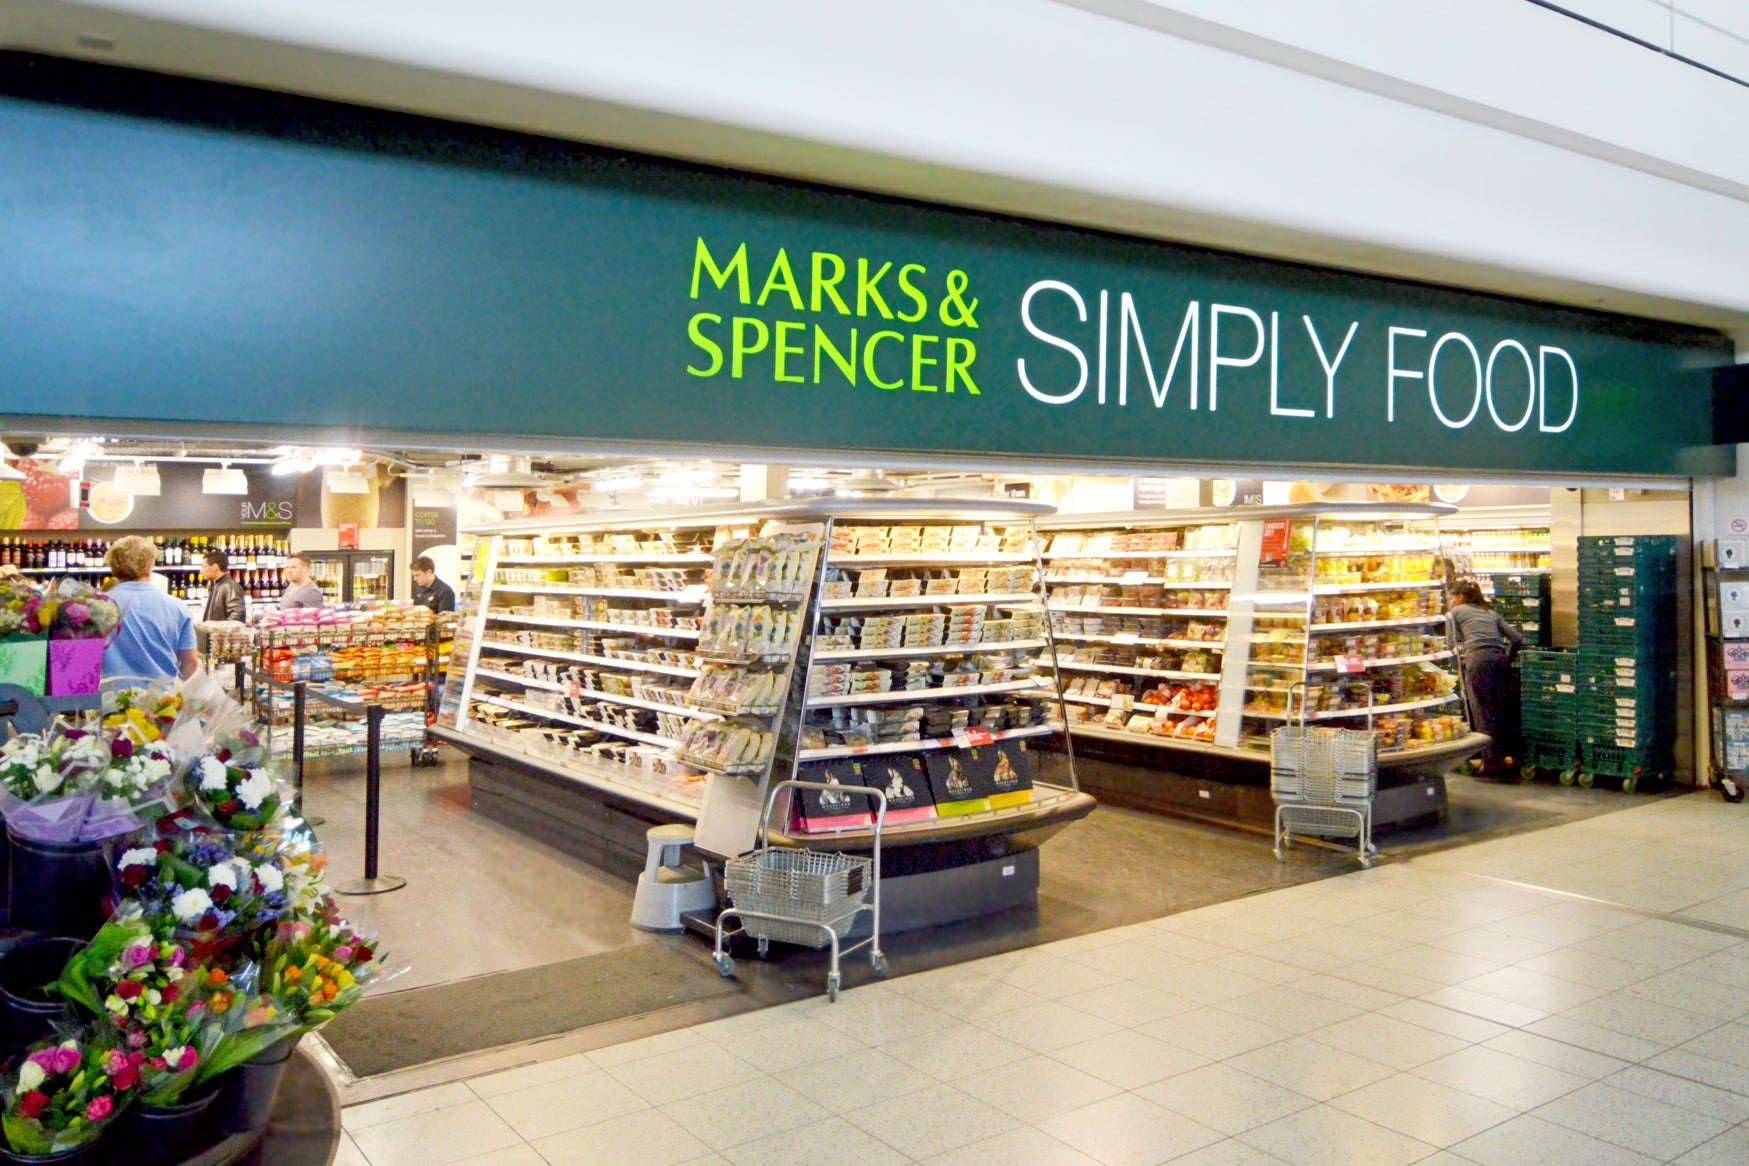 Marks & Spencer outrages vegans by selling fruit juices with beef collagen